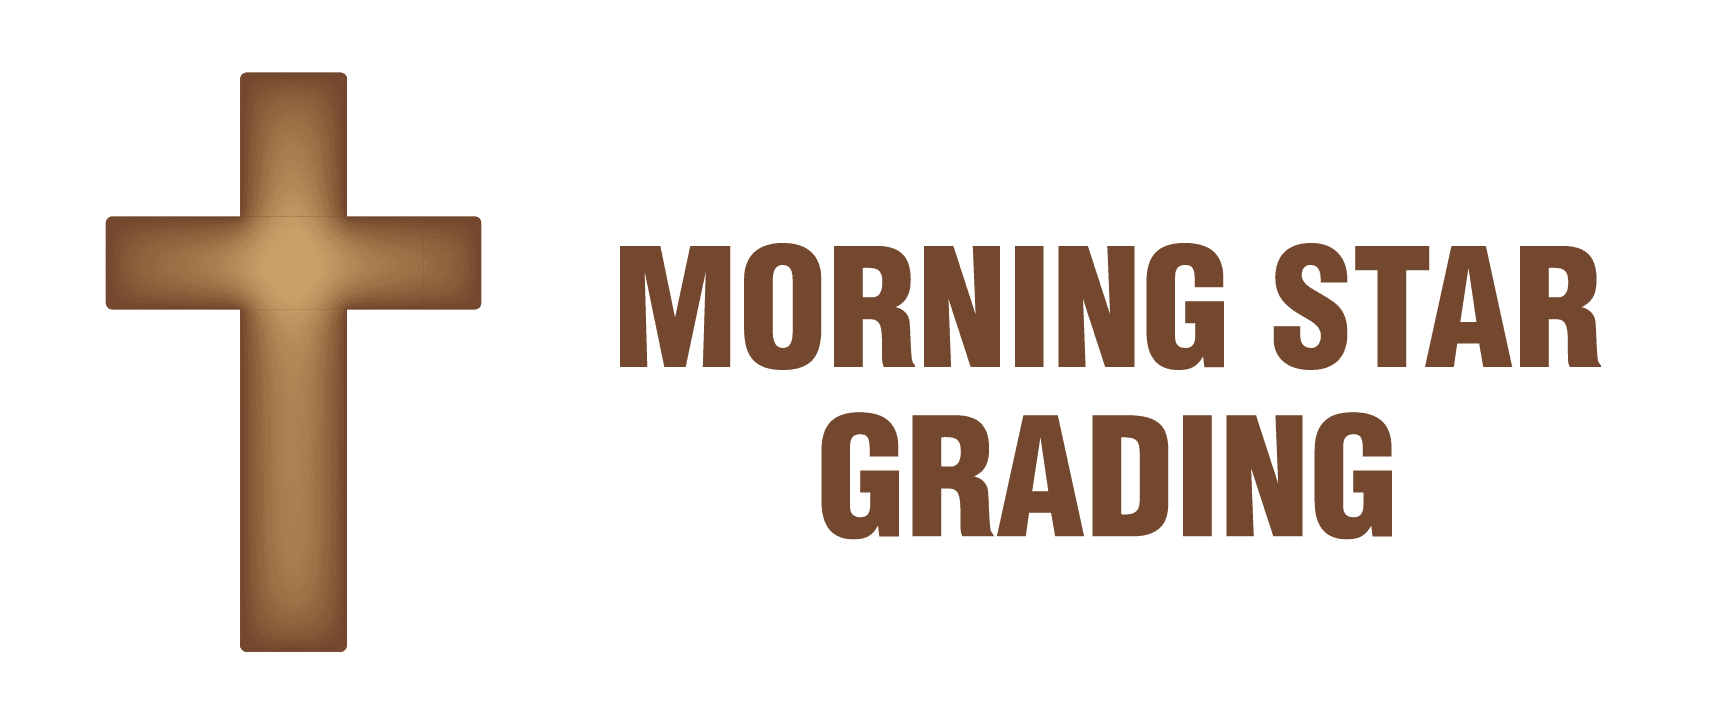 Morning Star Grading logo